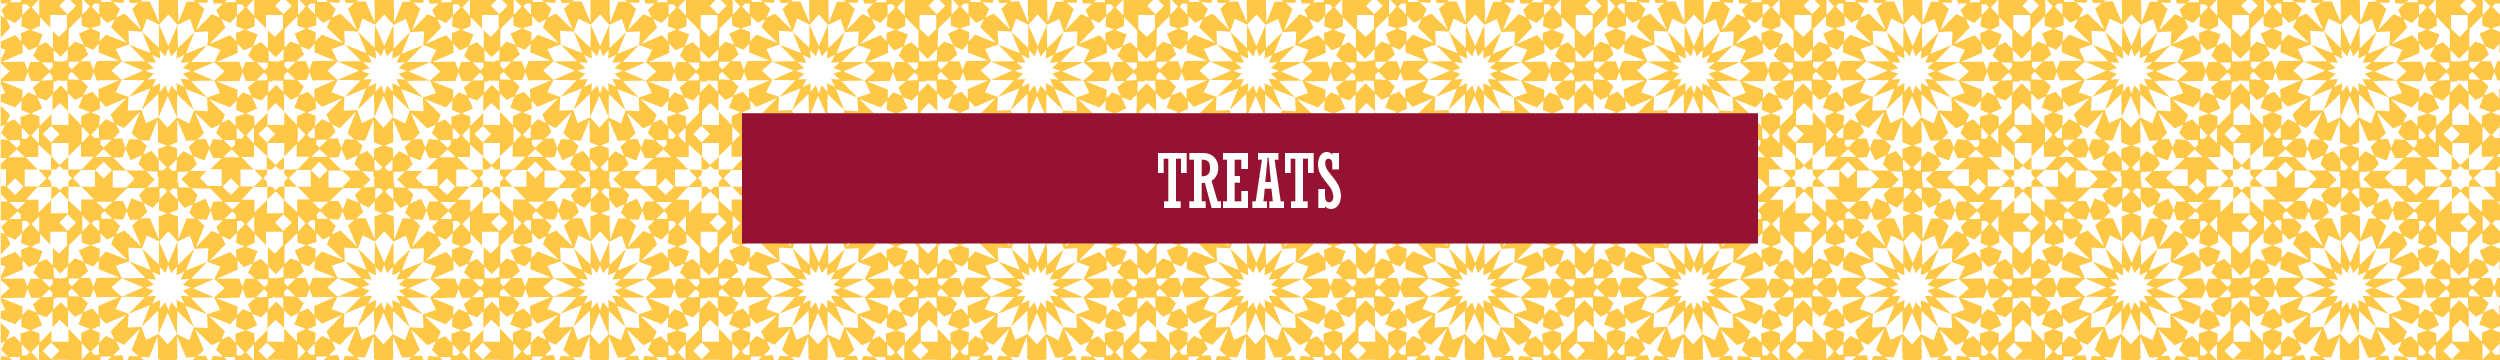 treats_2.png